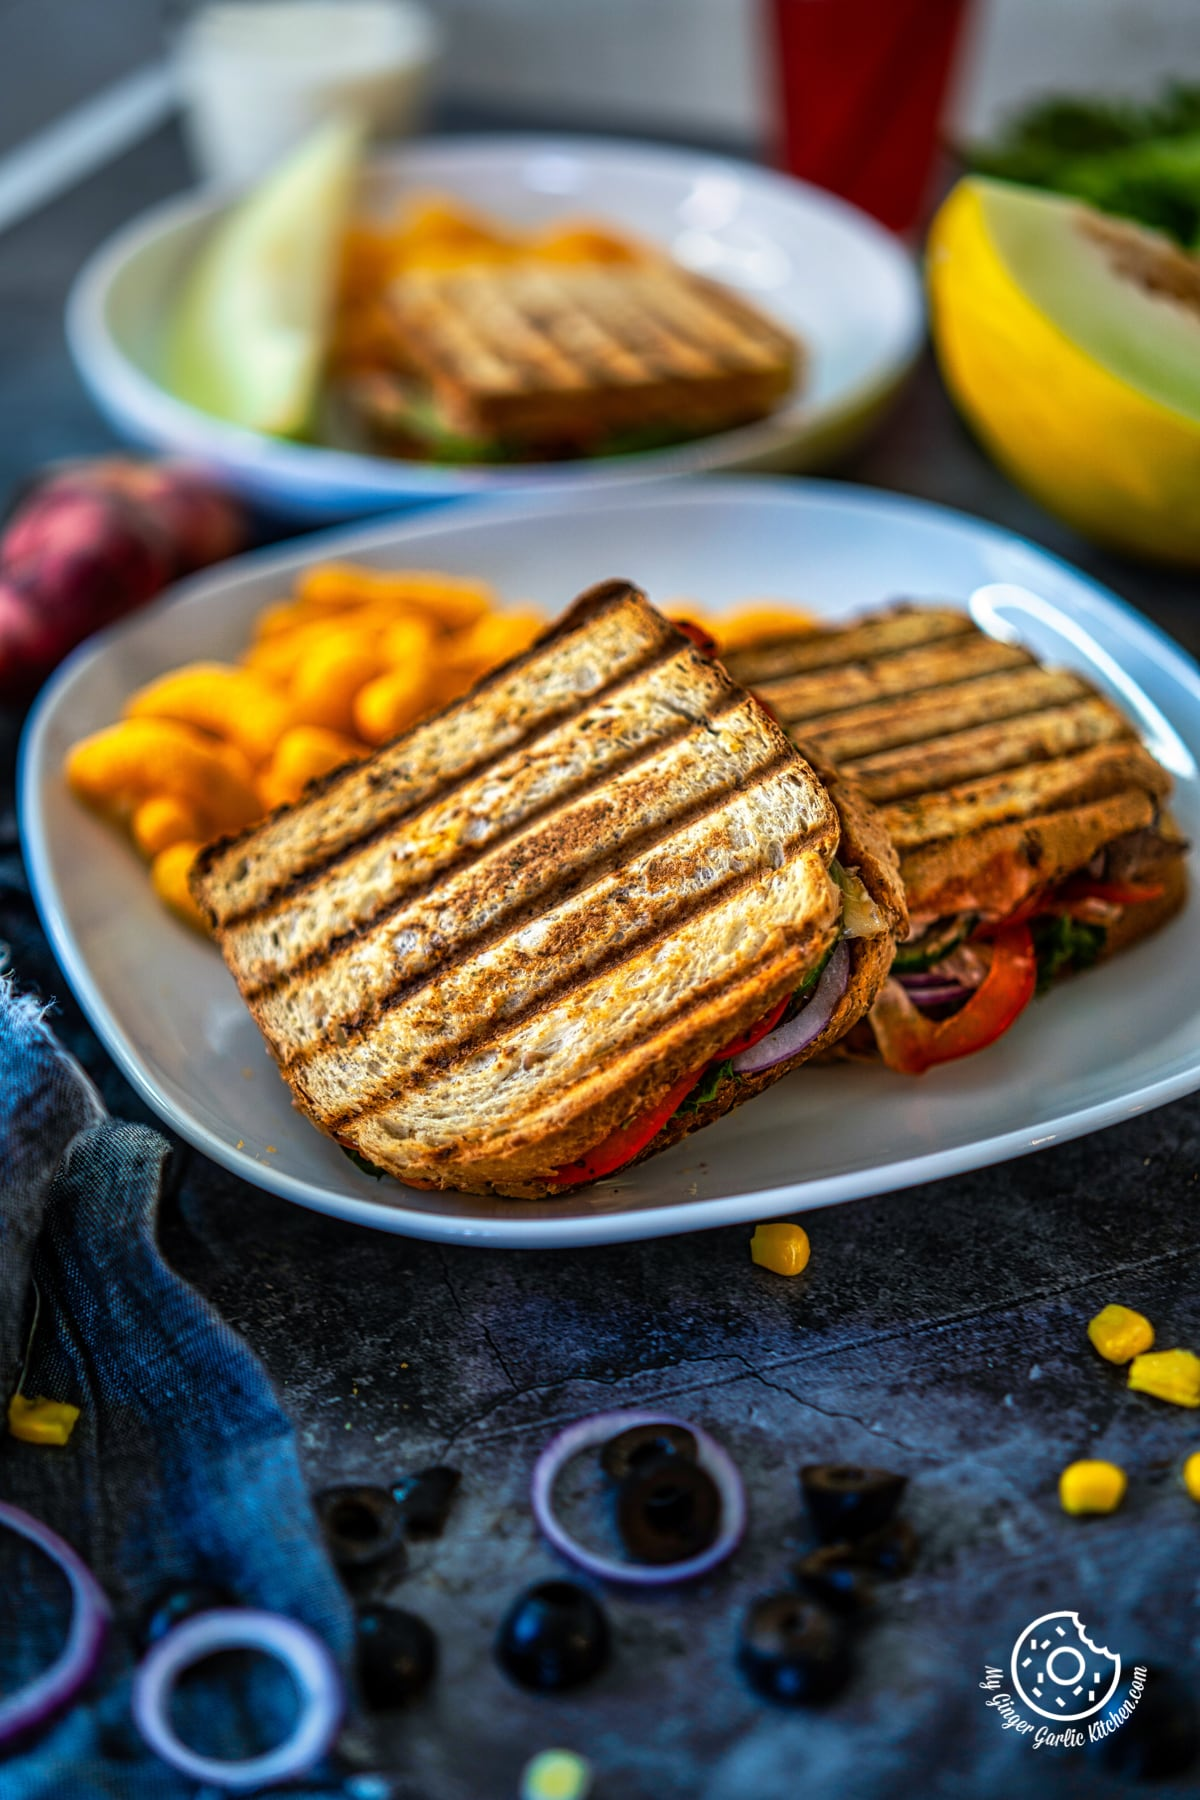 peanut butter and veggie grilled cheese sandwiches in a white plate along with cheese puffs